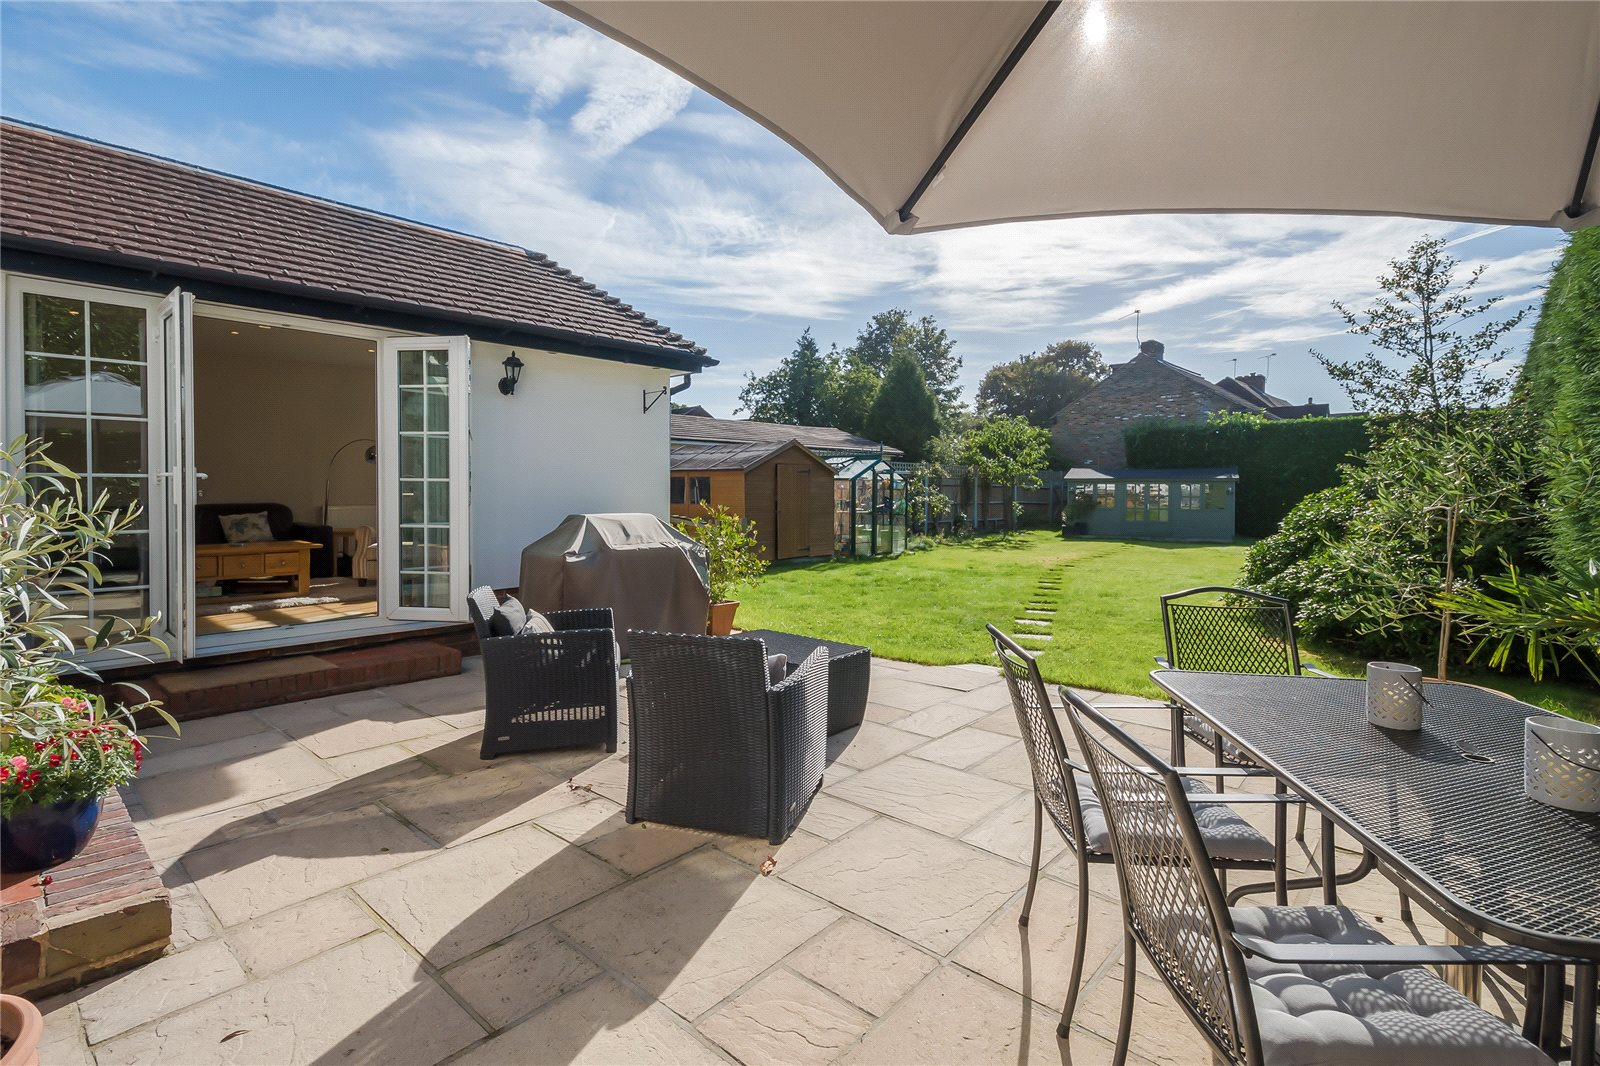 Additional photo for property listing at Priory Road, Chalfont St Peter, Buckinghamshire, SL9 Chalfont St Peter, Inglaterra